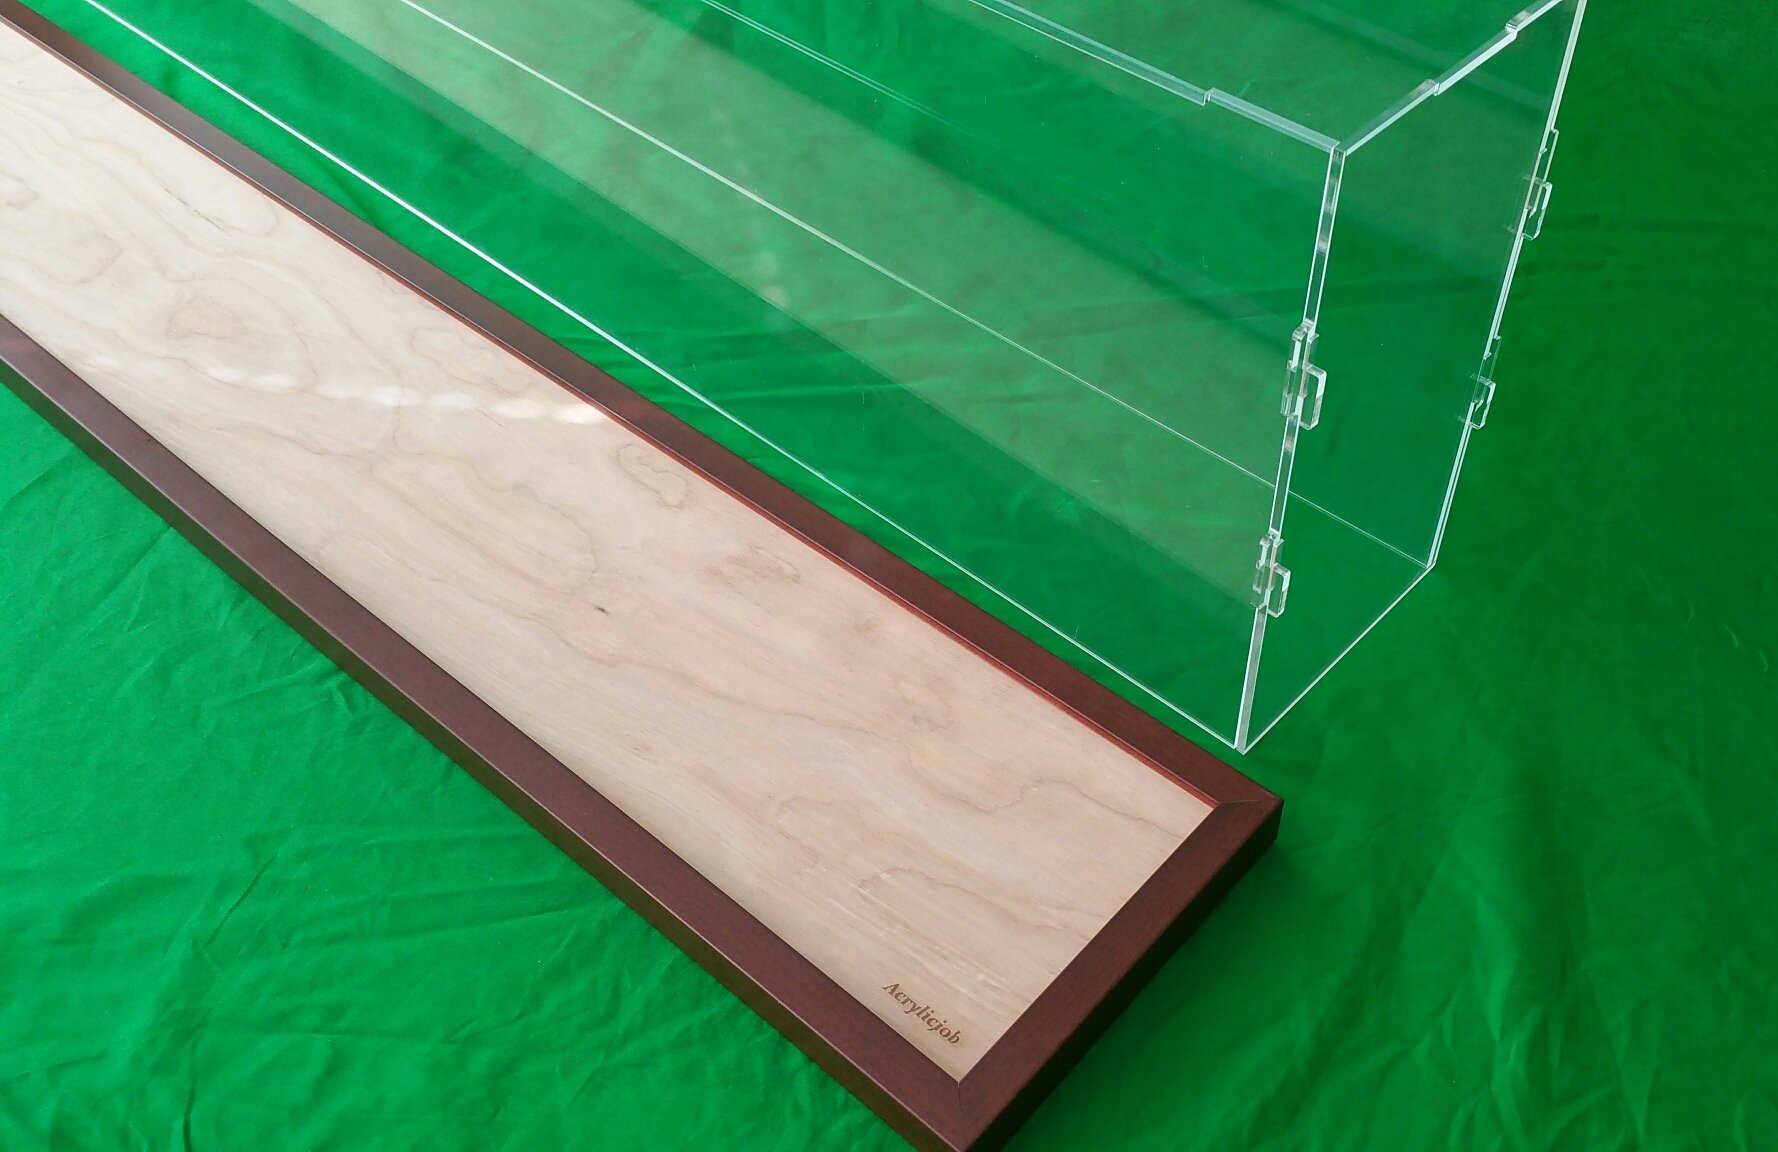 42''L x 6''W x 12''H Display Case Box for Model Cruise Ships and Ocean Liner LGB and G Scale Trains 1/32 1/23 Plexiglass Acrylic by Acrylicjob (Image #8)